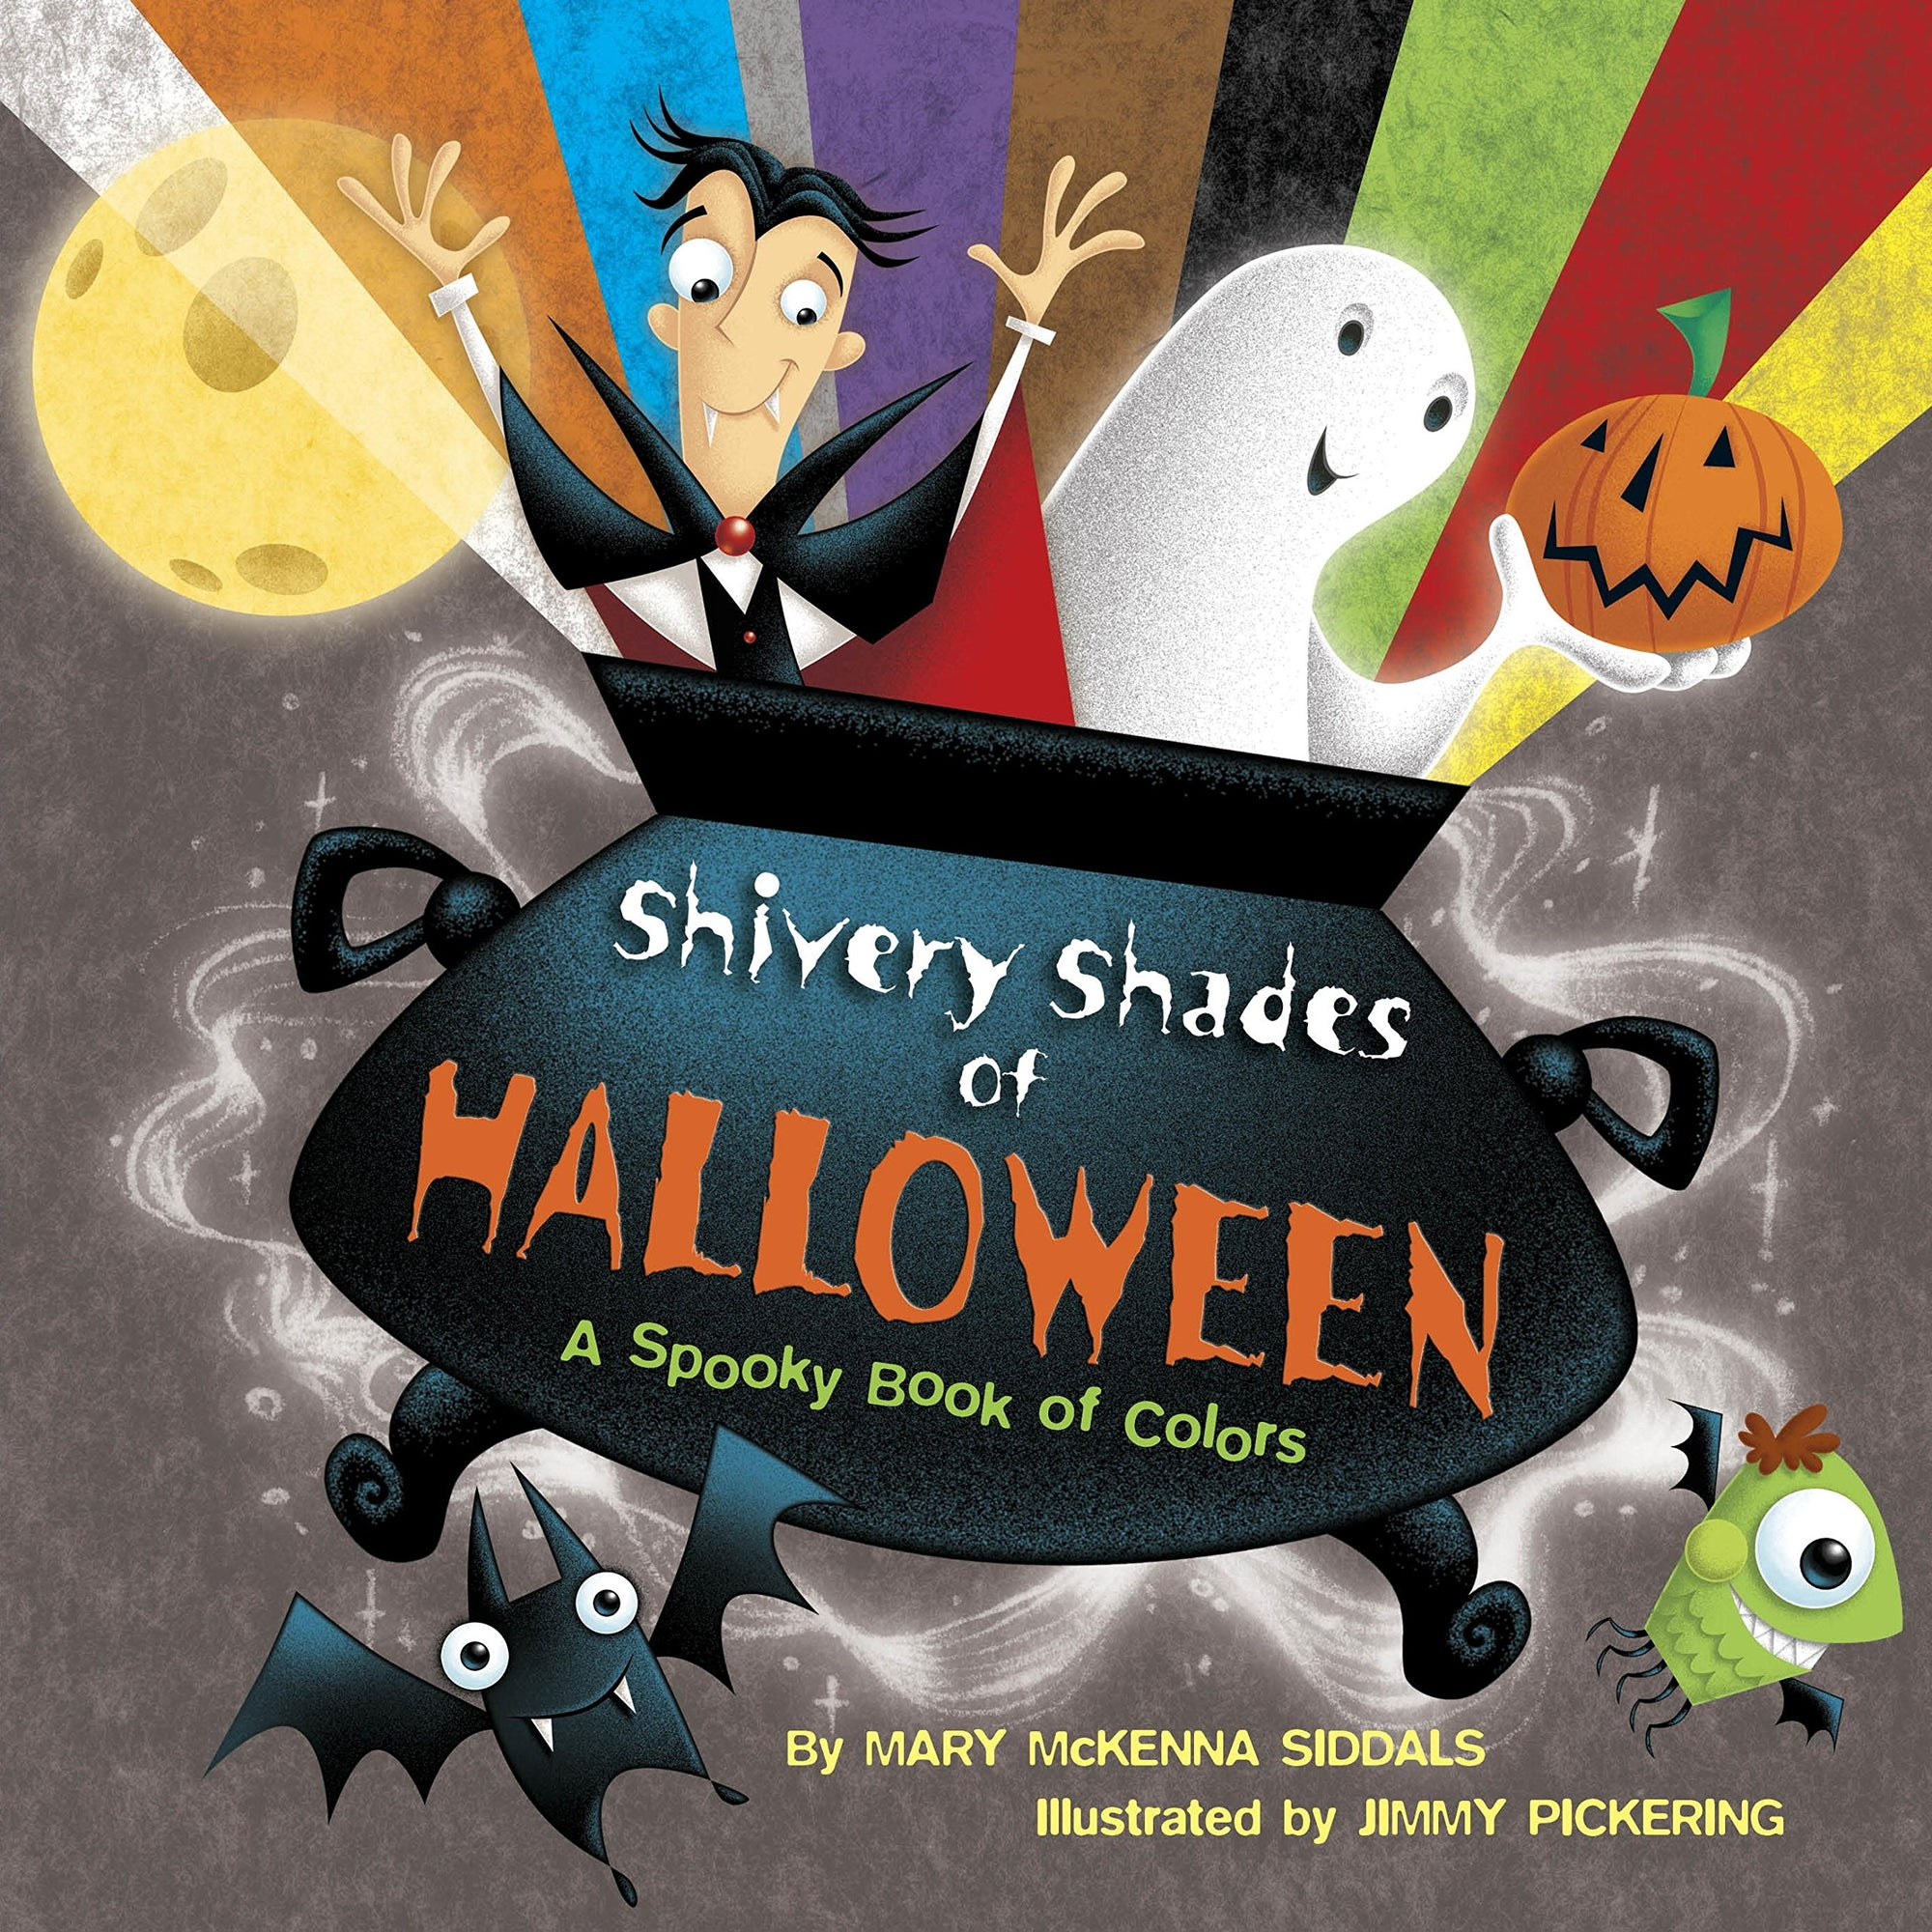 Book - Shivery Shades of Halloween: A Spooky Book of Colors